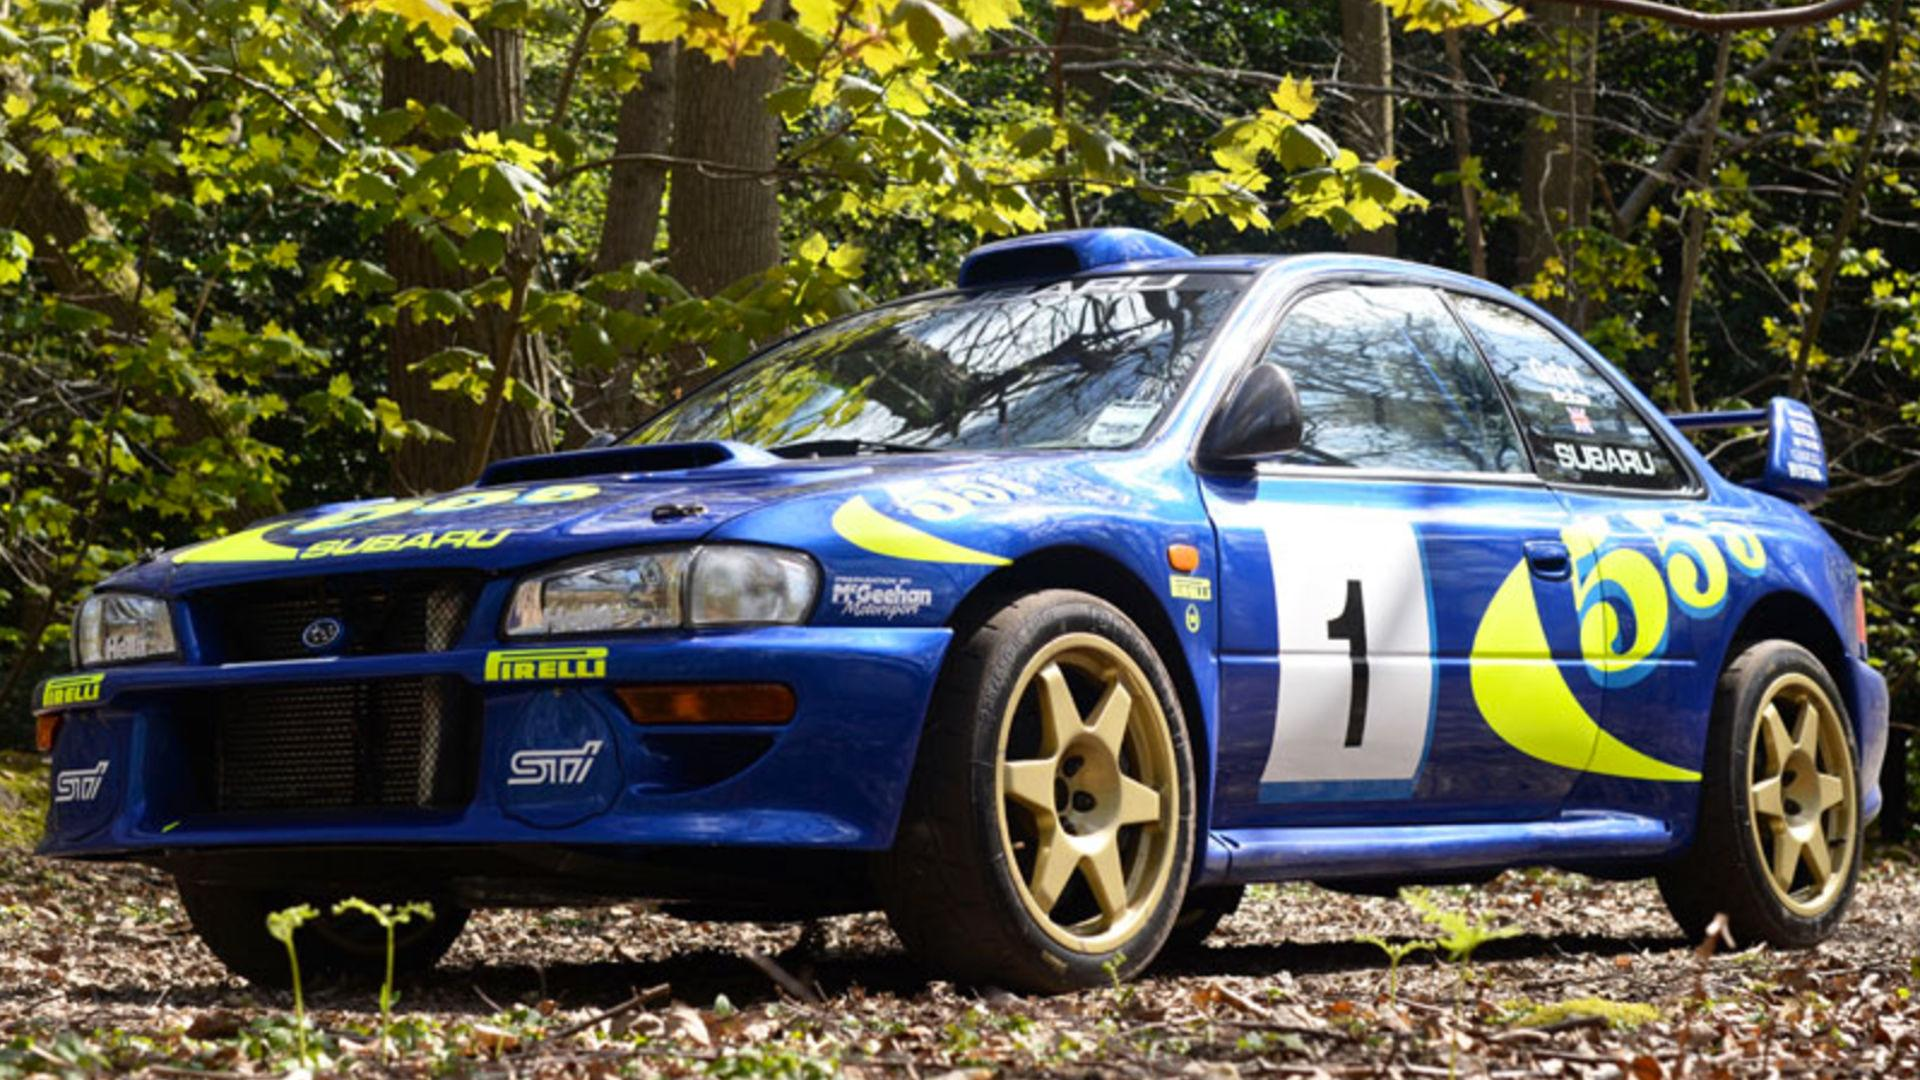 colin mcrae 39 s subaru impreza wrc test car sells for nearly 300k. Black Bedroom Furniture Sets. Home Design Ideas